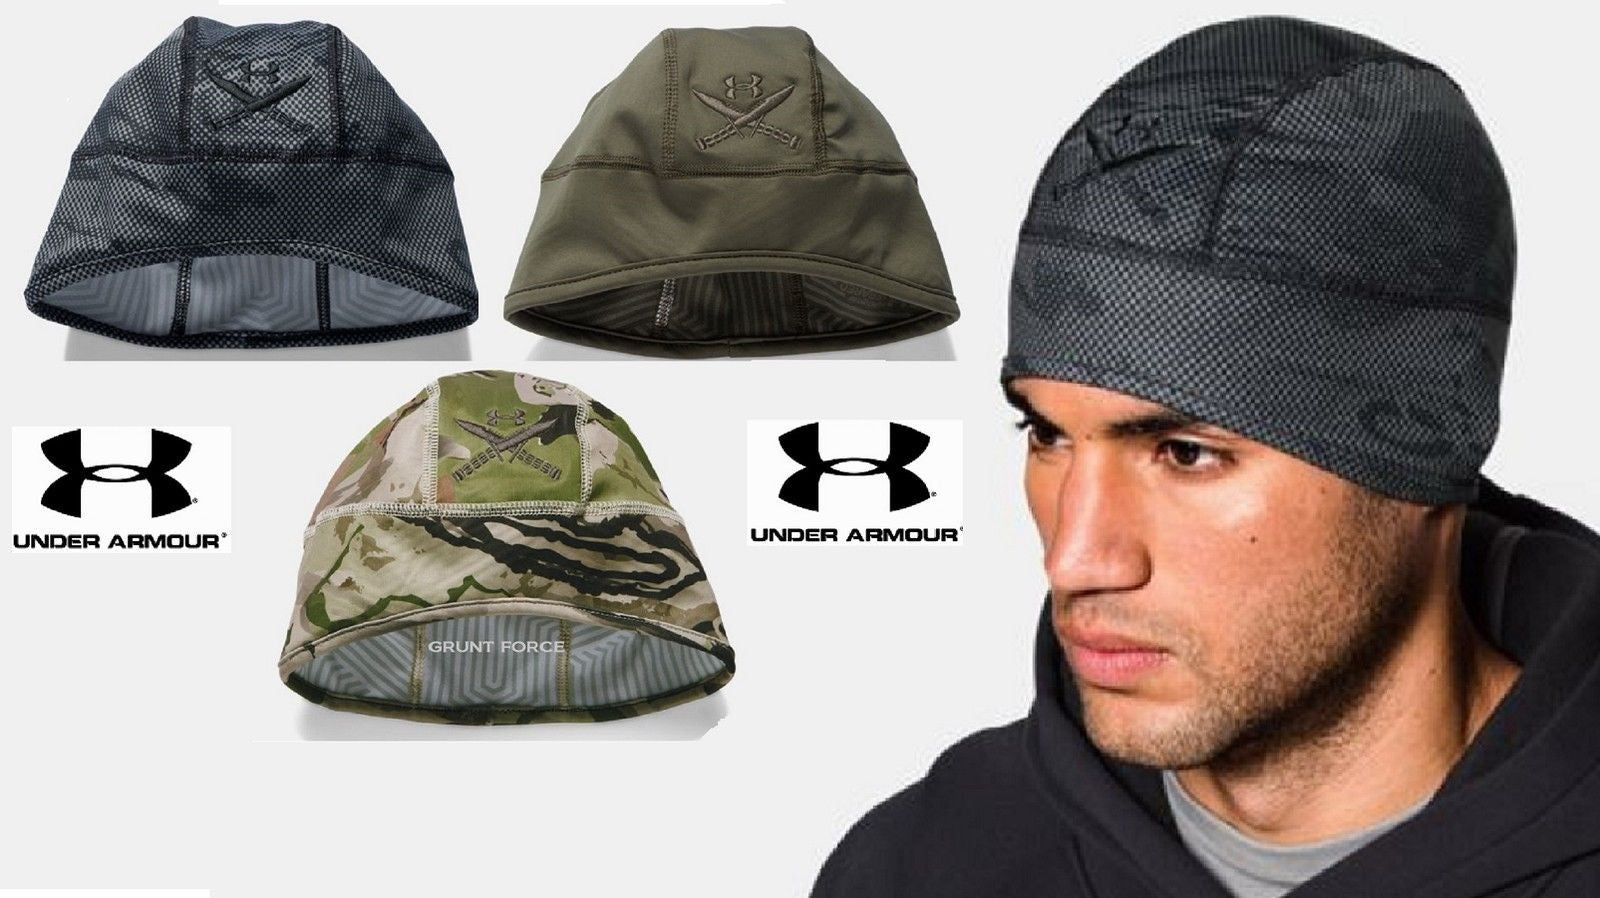 Under Armour Infrared ColdGear Beanie Hat - UA Tactical Winter Skull Cap  Beanies. 10c5dfba3f6